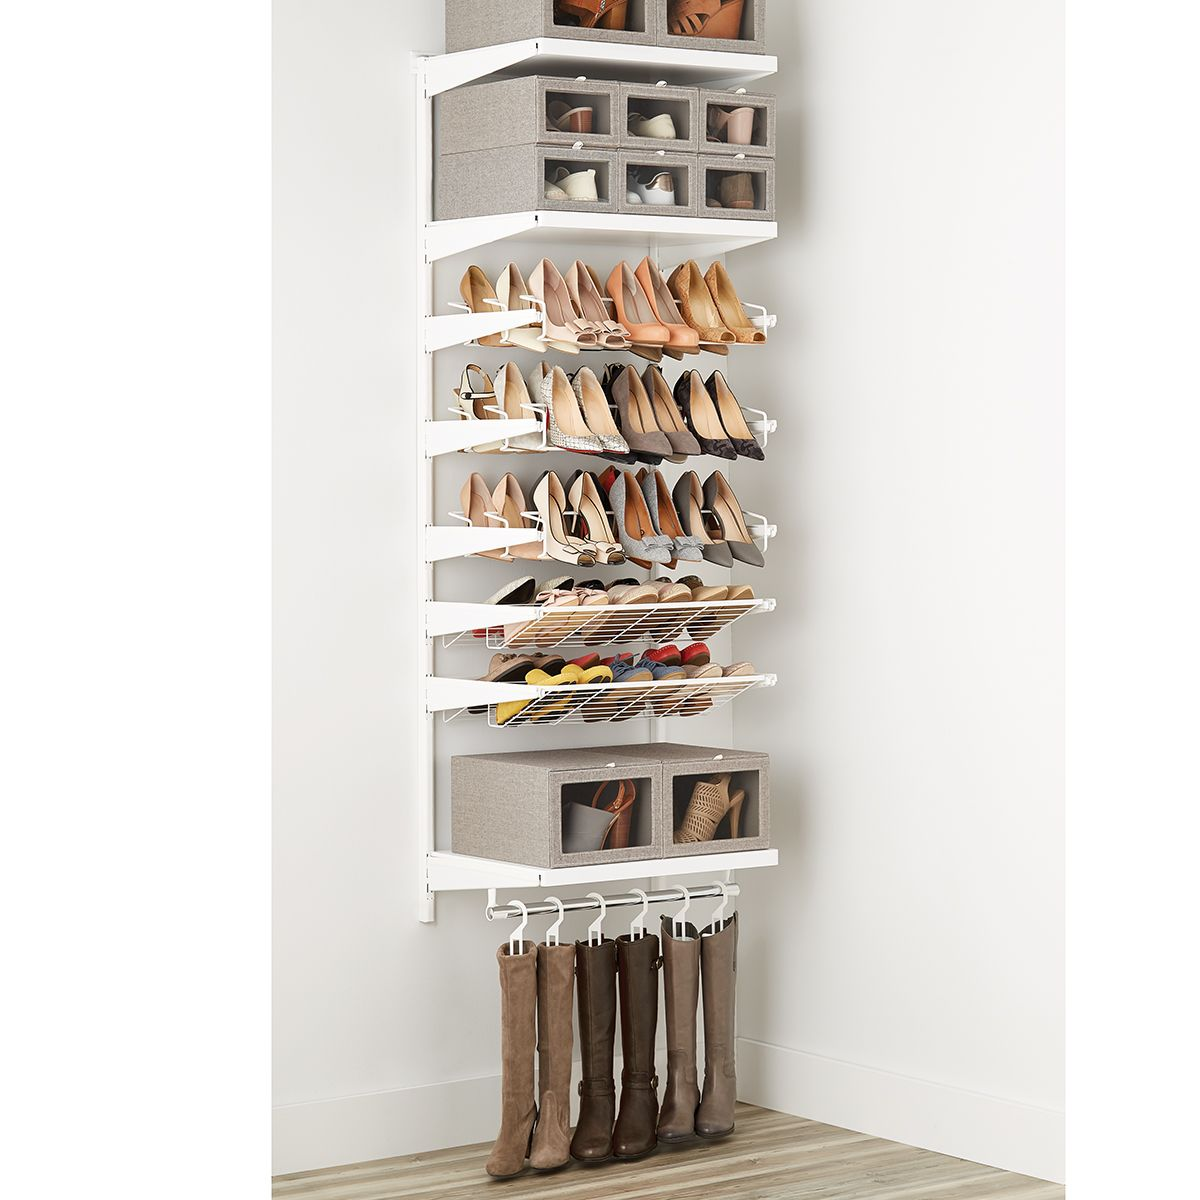 11 Clever Ways To Store Shoes Shoe Storage Ideas